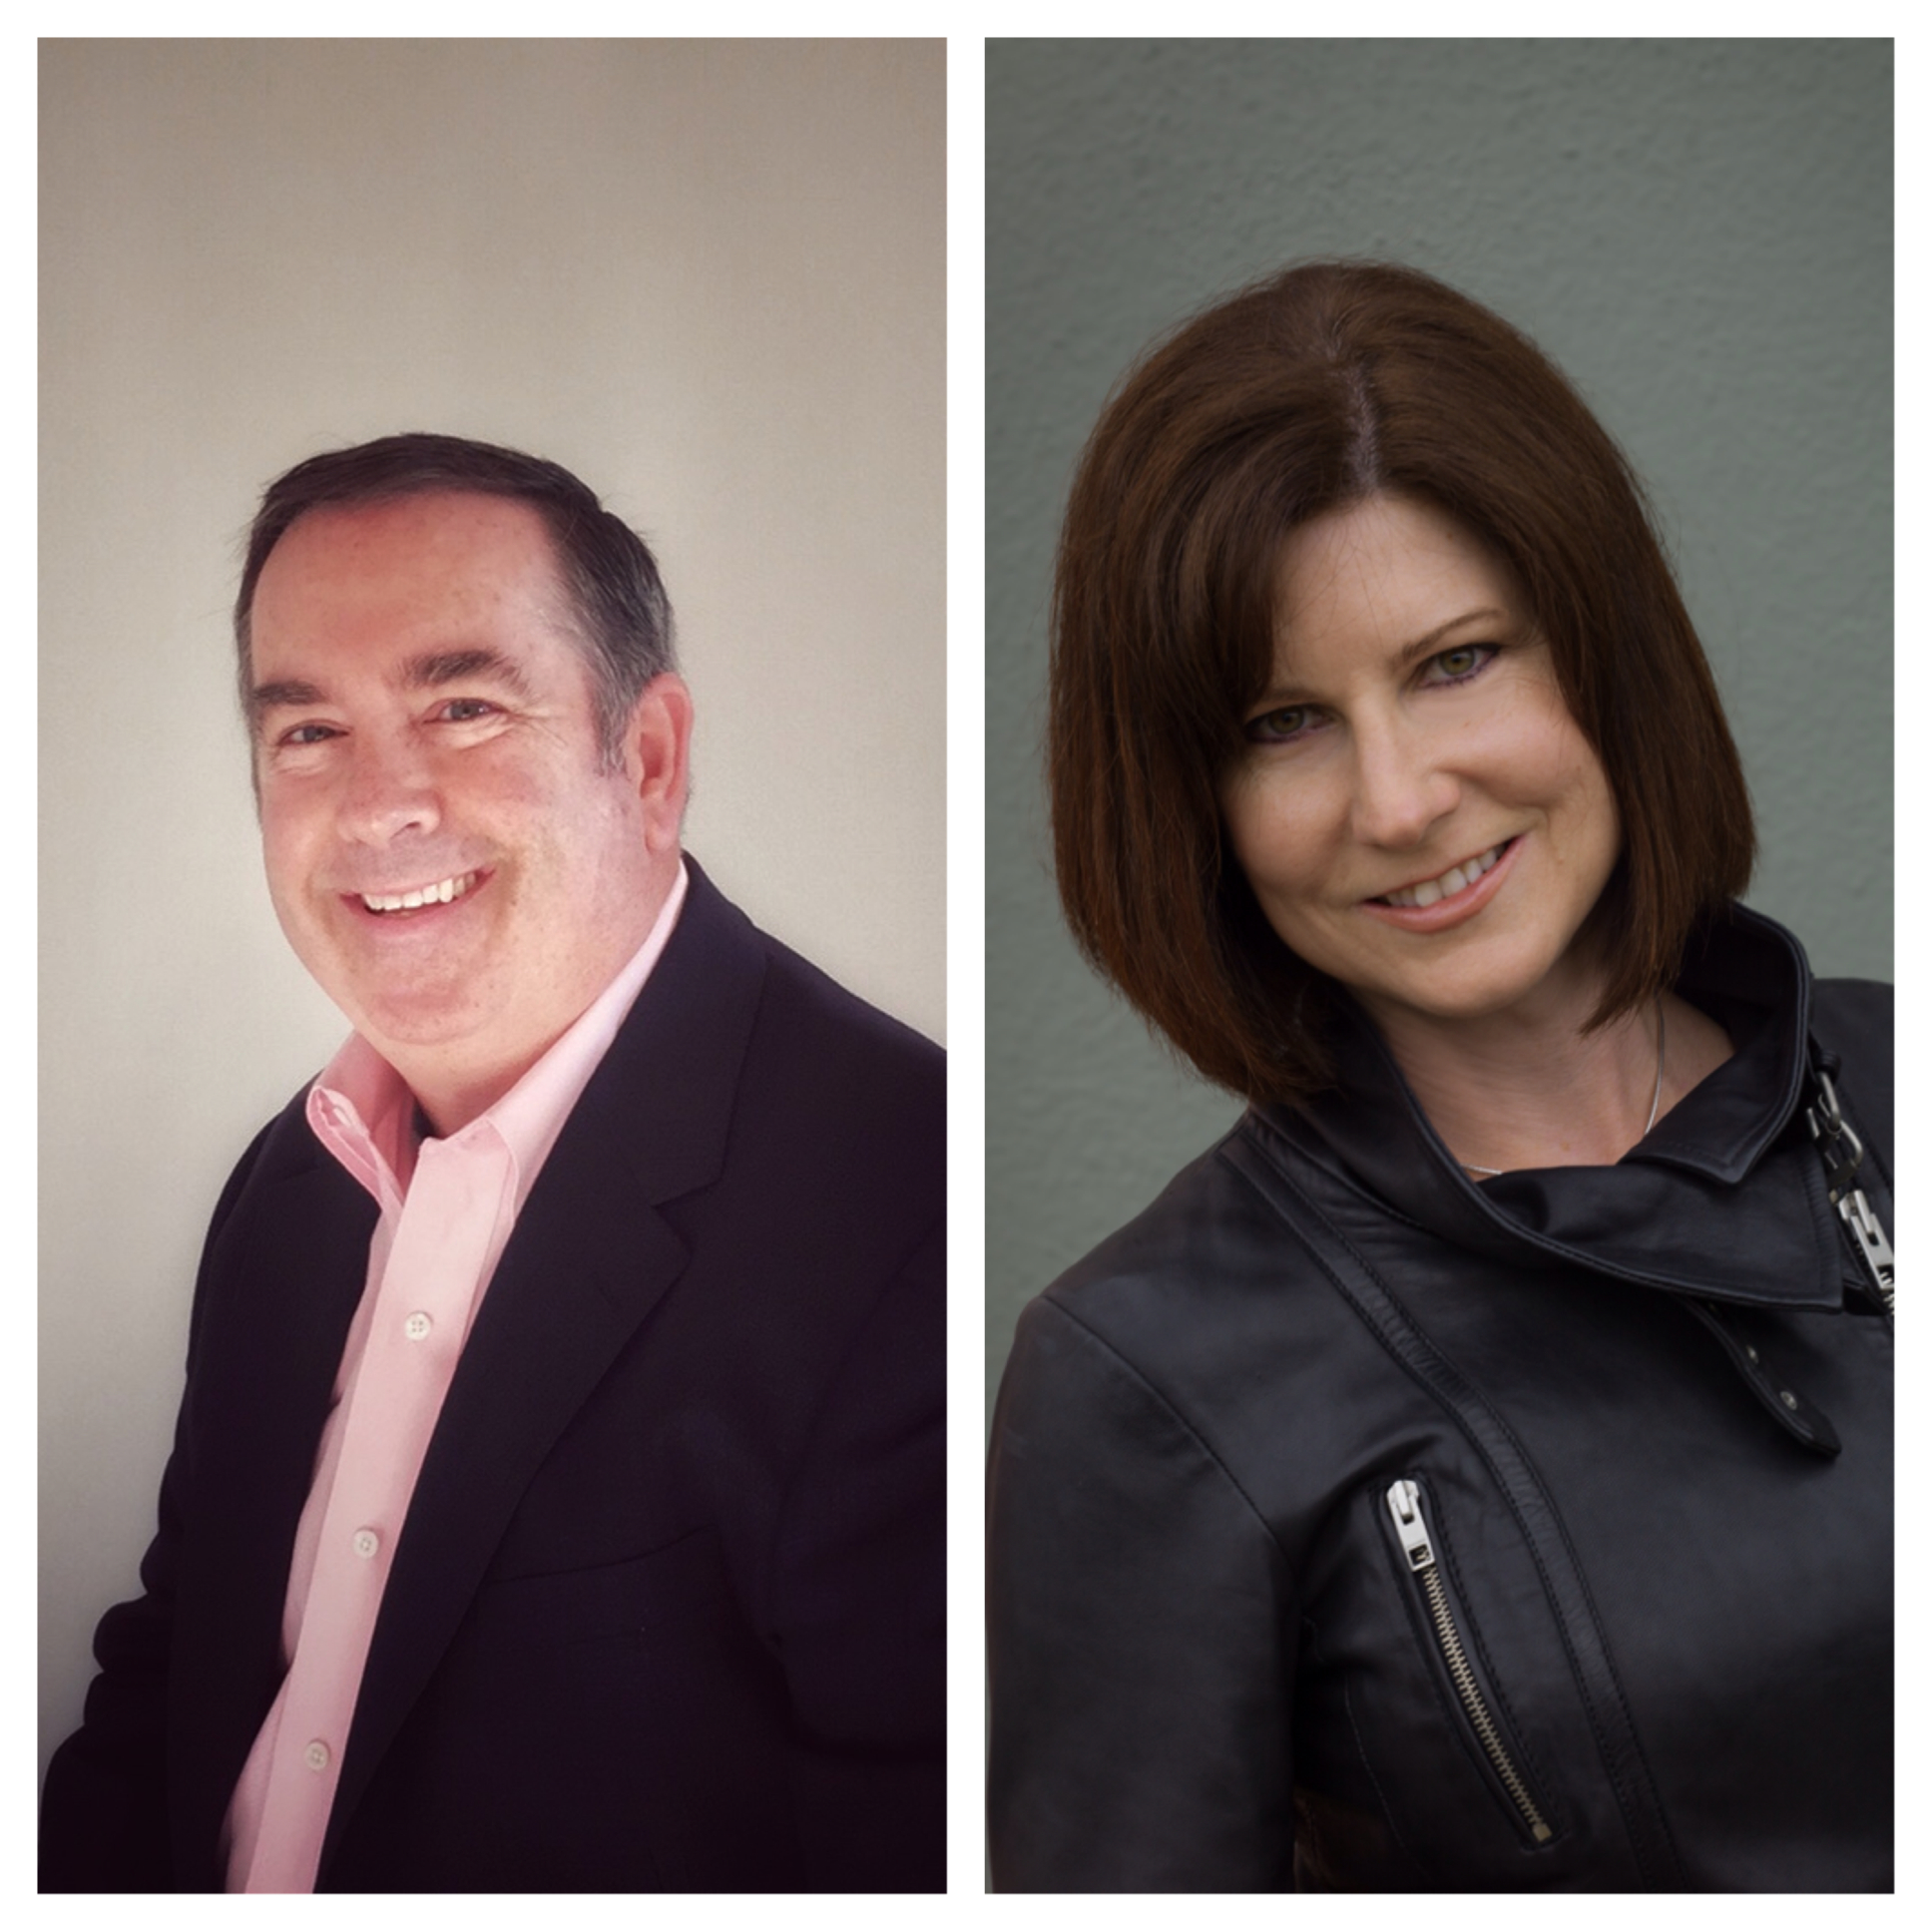 John Powers Named Vice President, Sales and Education and Jennifer Rattazzi Named Area Vice President, Salon Professional, North America